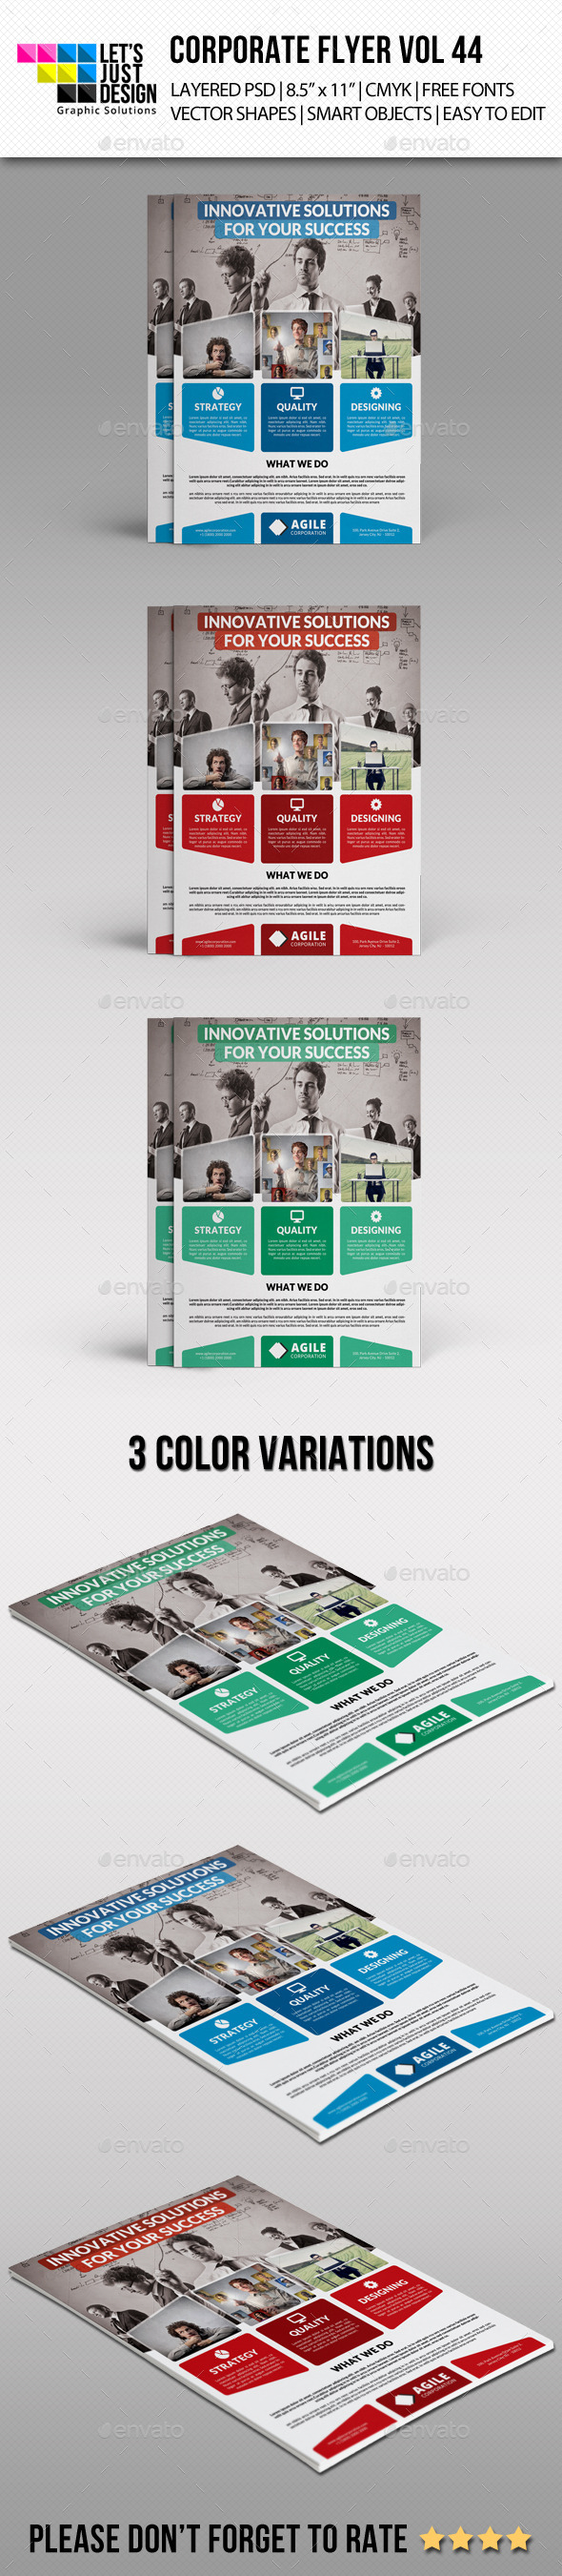 Corporate Flyer Template Vol 44 - Corporate Flyers